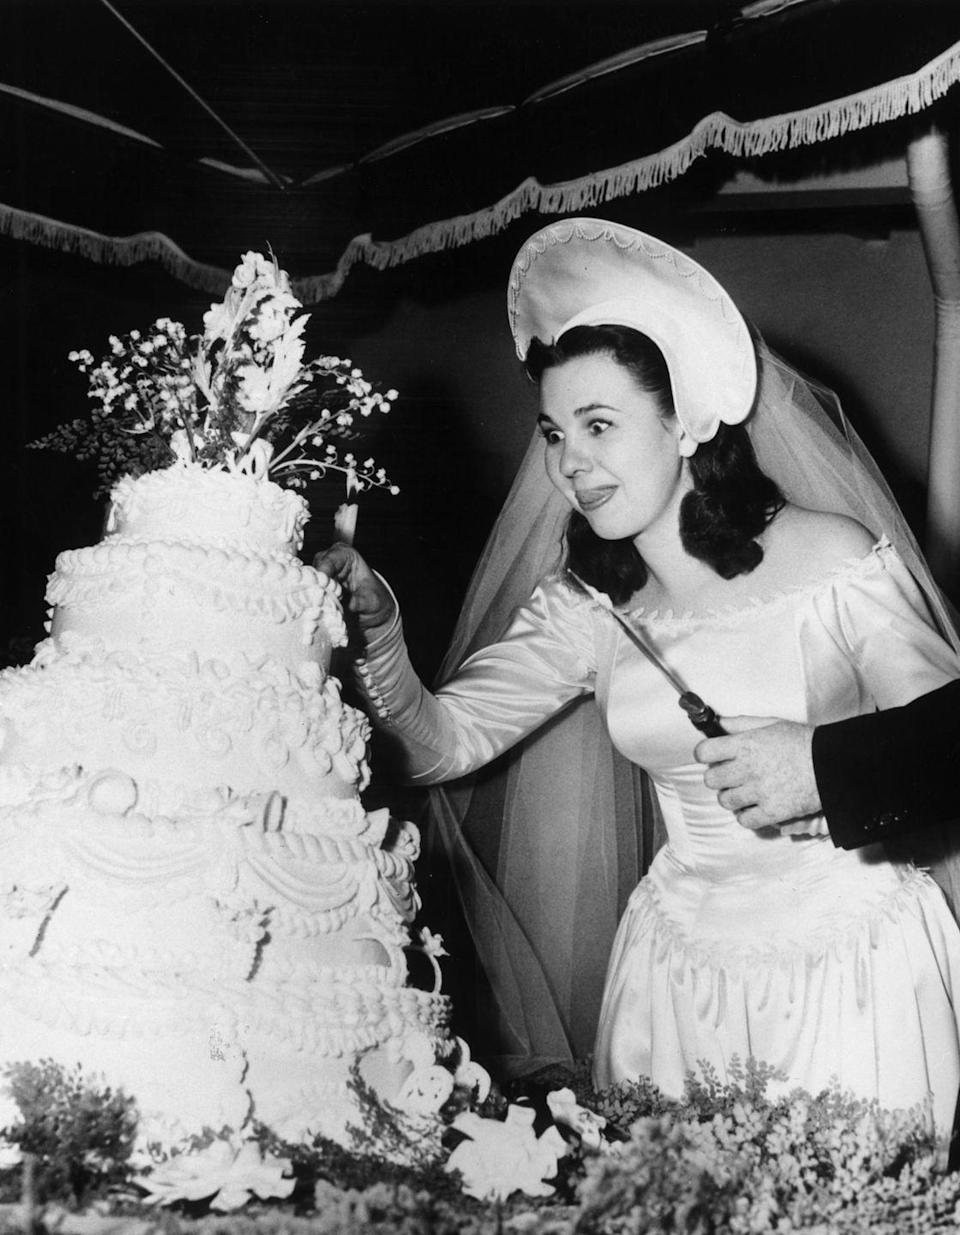 <p>This 1947 bride can't quite believe her eyes at the massive cake that was designed to feed 600 wedding guests. (Our attention shifts to her unique headpiece, though.)</p>